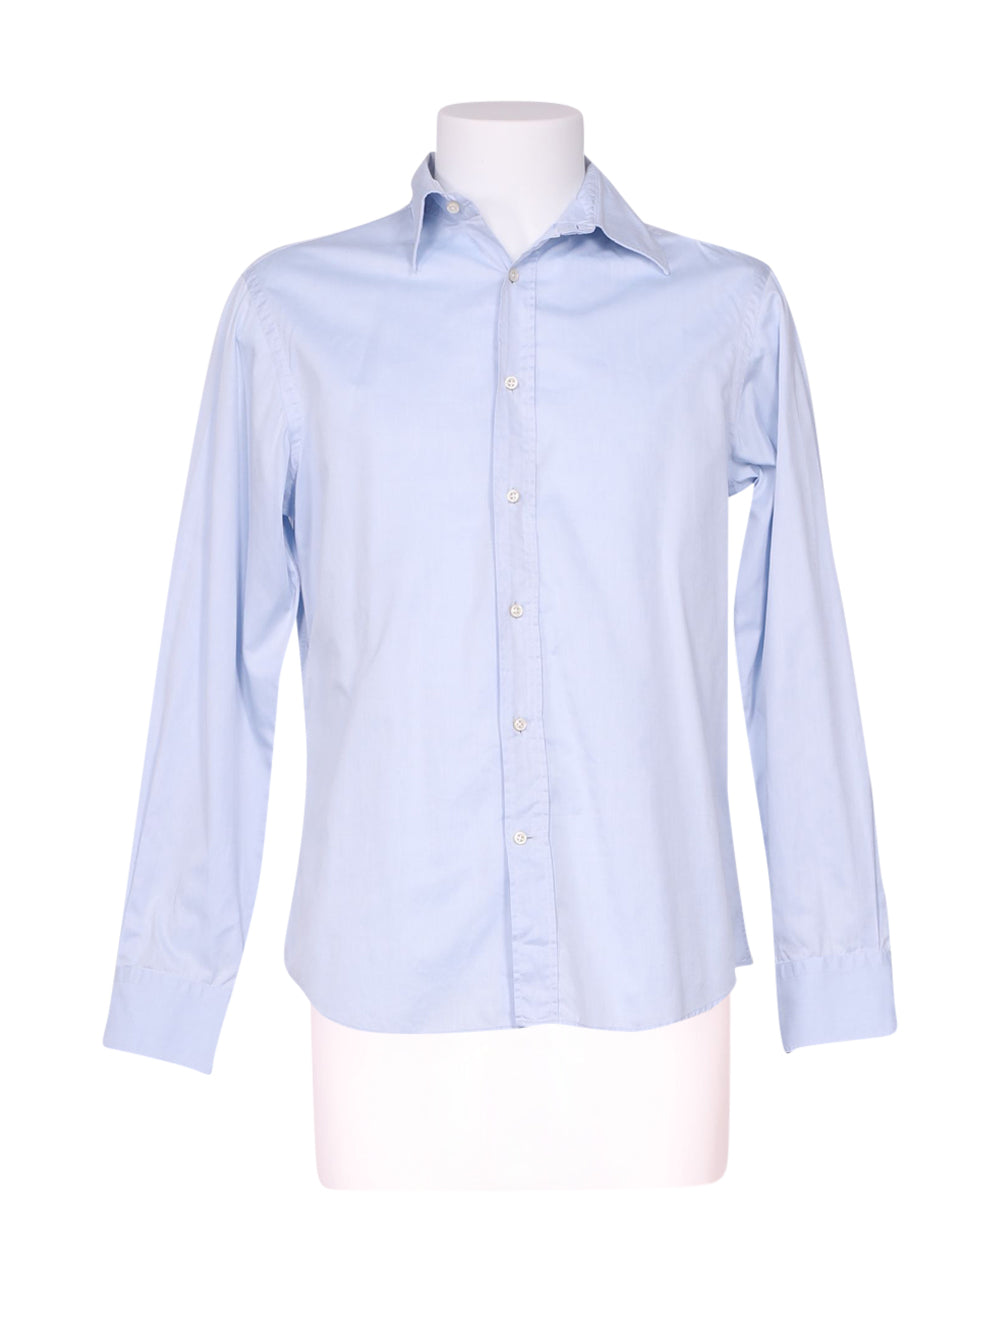 Front photo of Preloved Mauro Grifoni Light-blue Man's shirt - size 34/XS